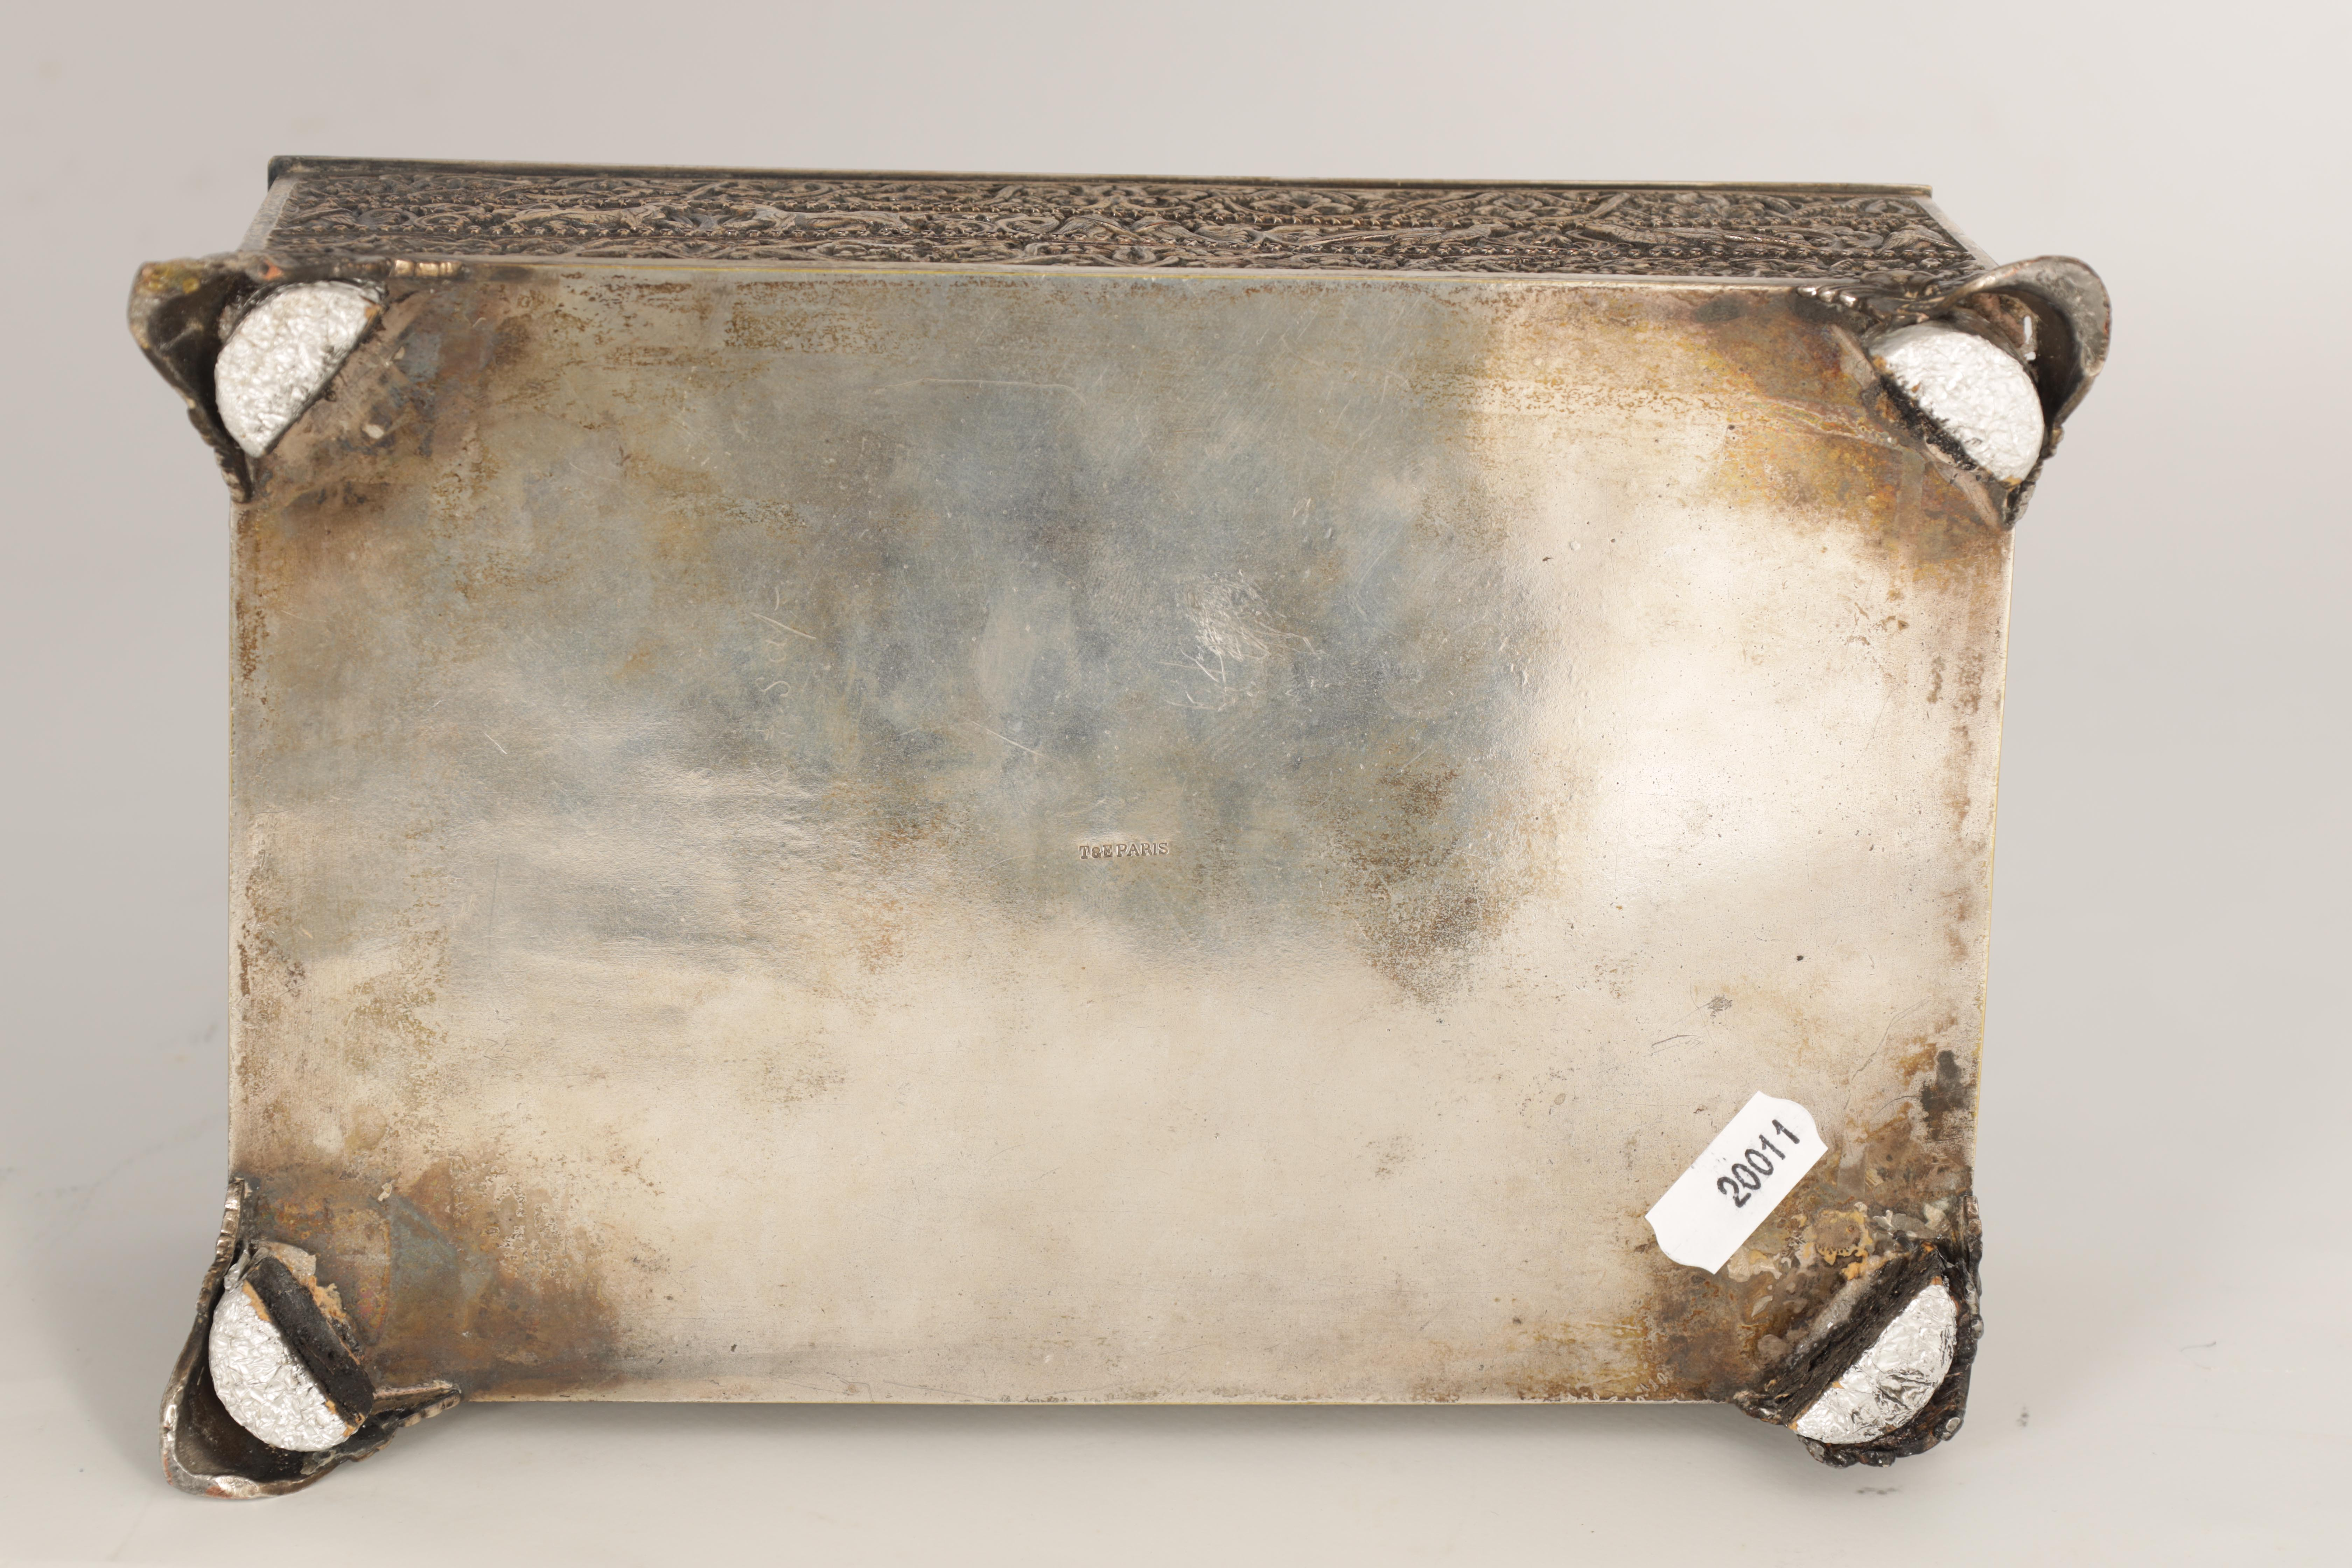 A 19TH CENTURY SILVERED BRONZE JEWELLERY CASKET the lid with intricate relief groups of birds, - Image 11 of 12